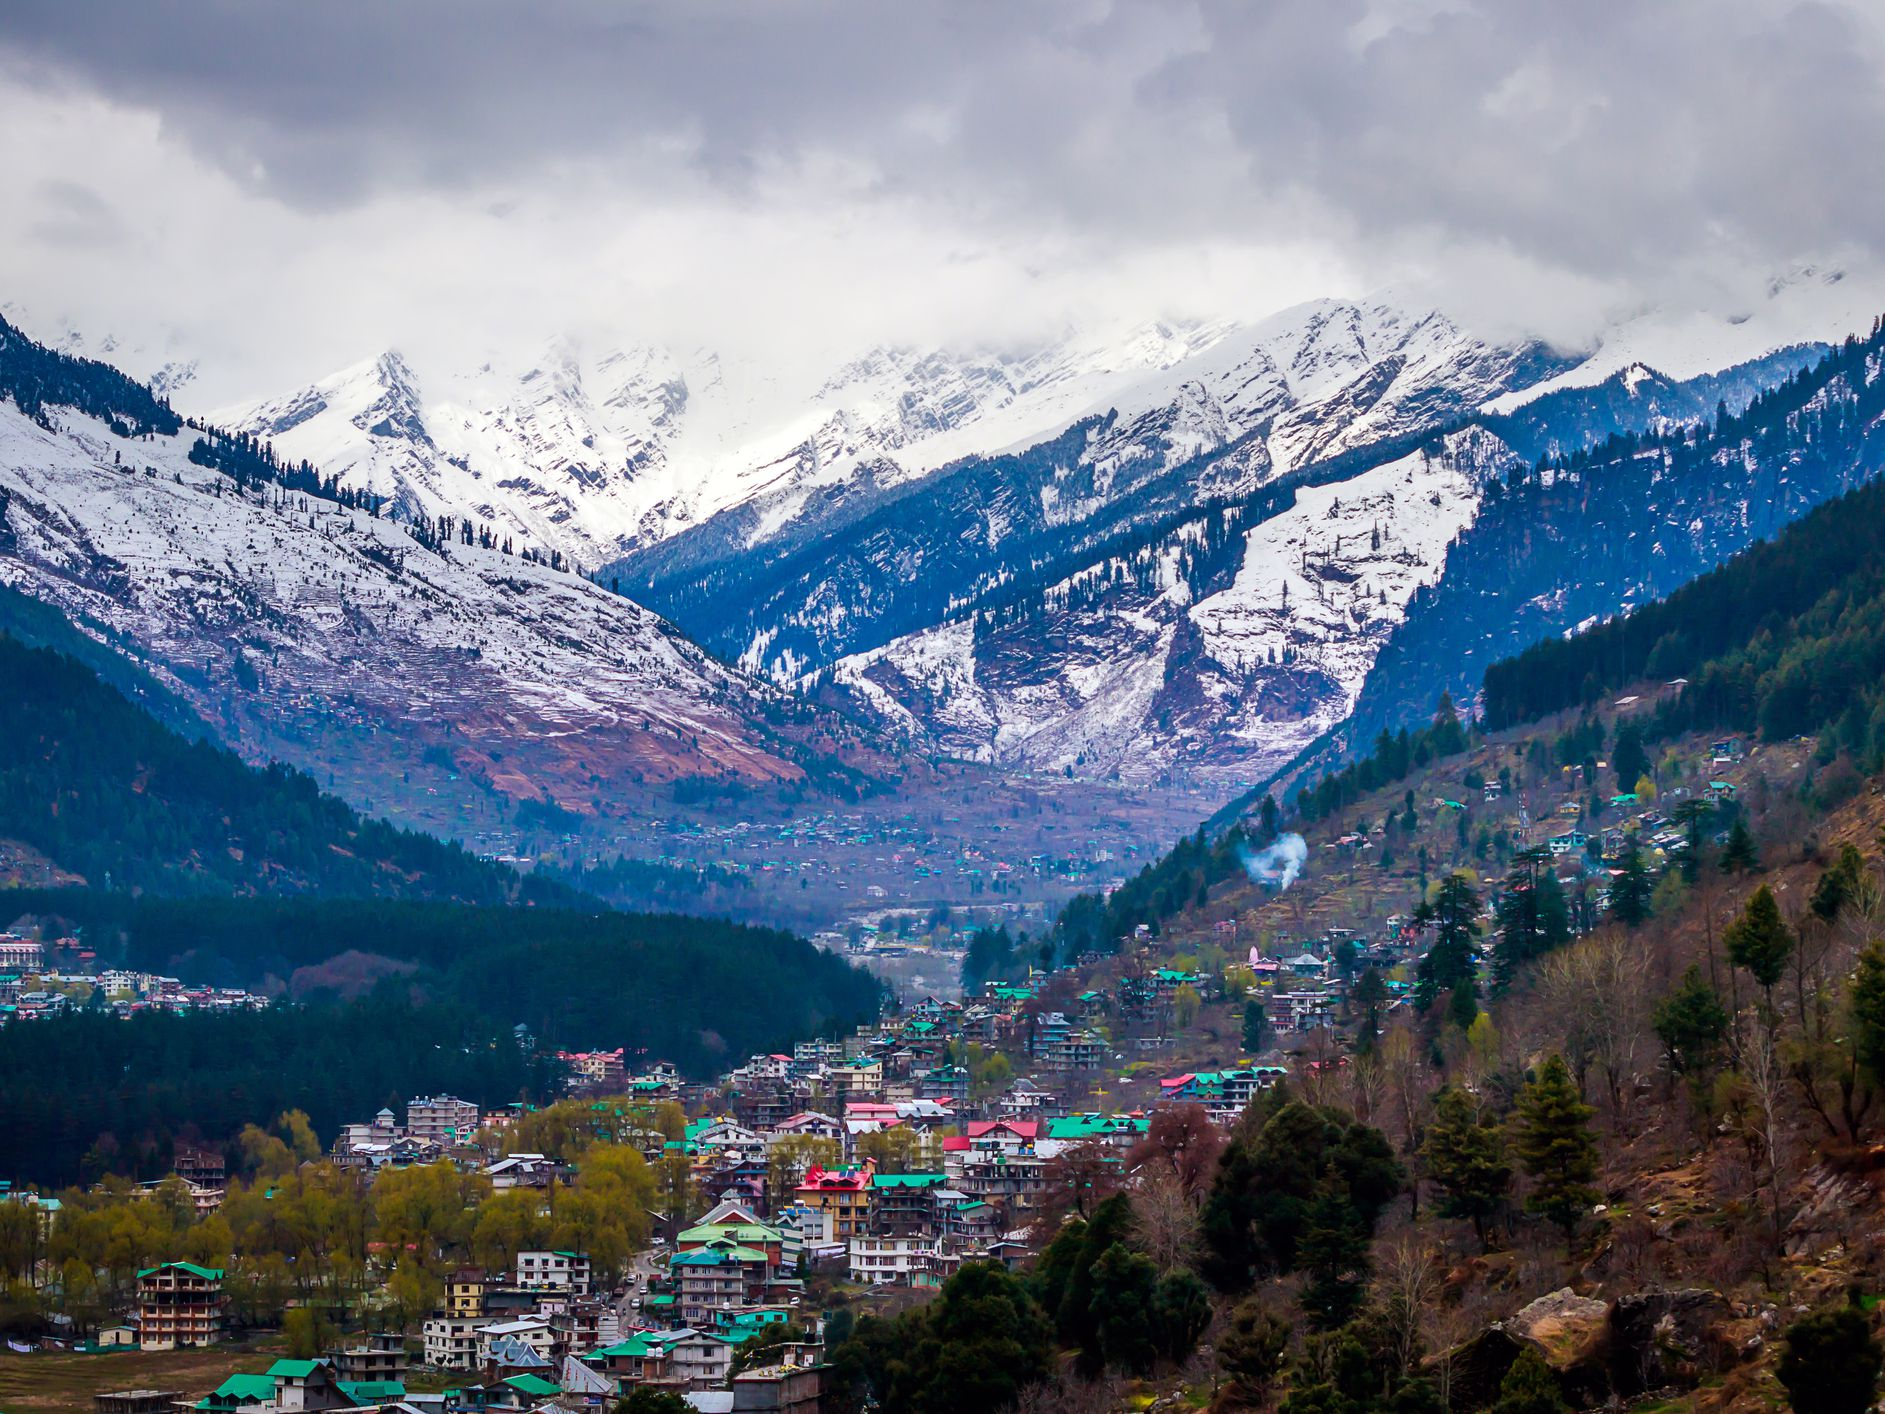 Day 1 - Drive from Manali to Jobra